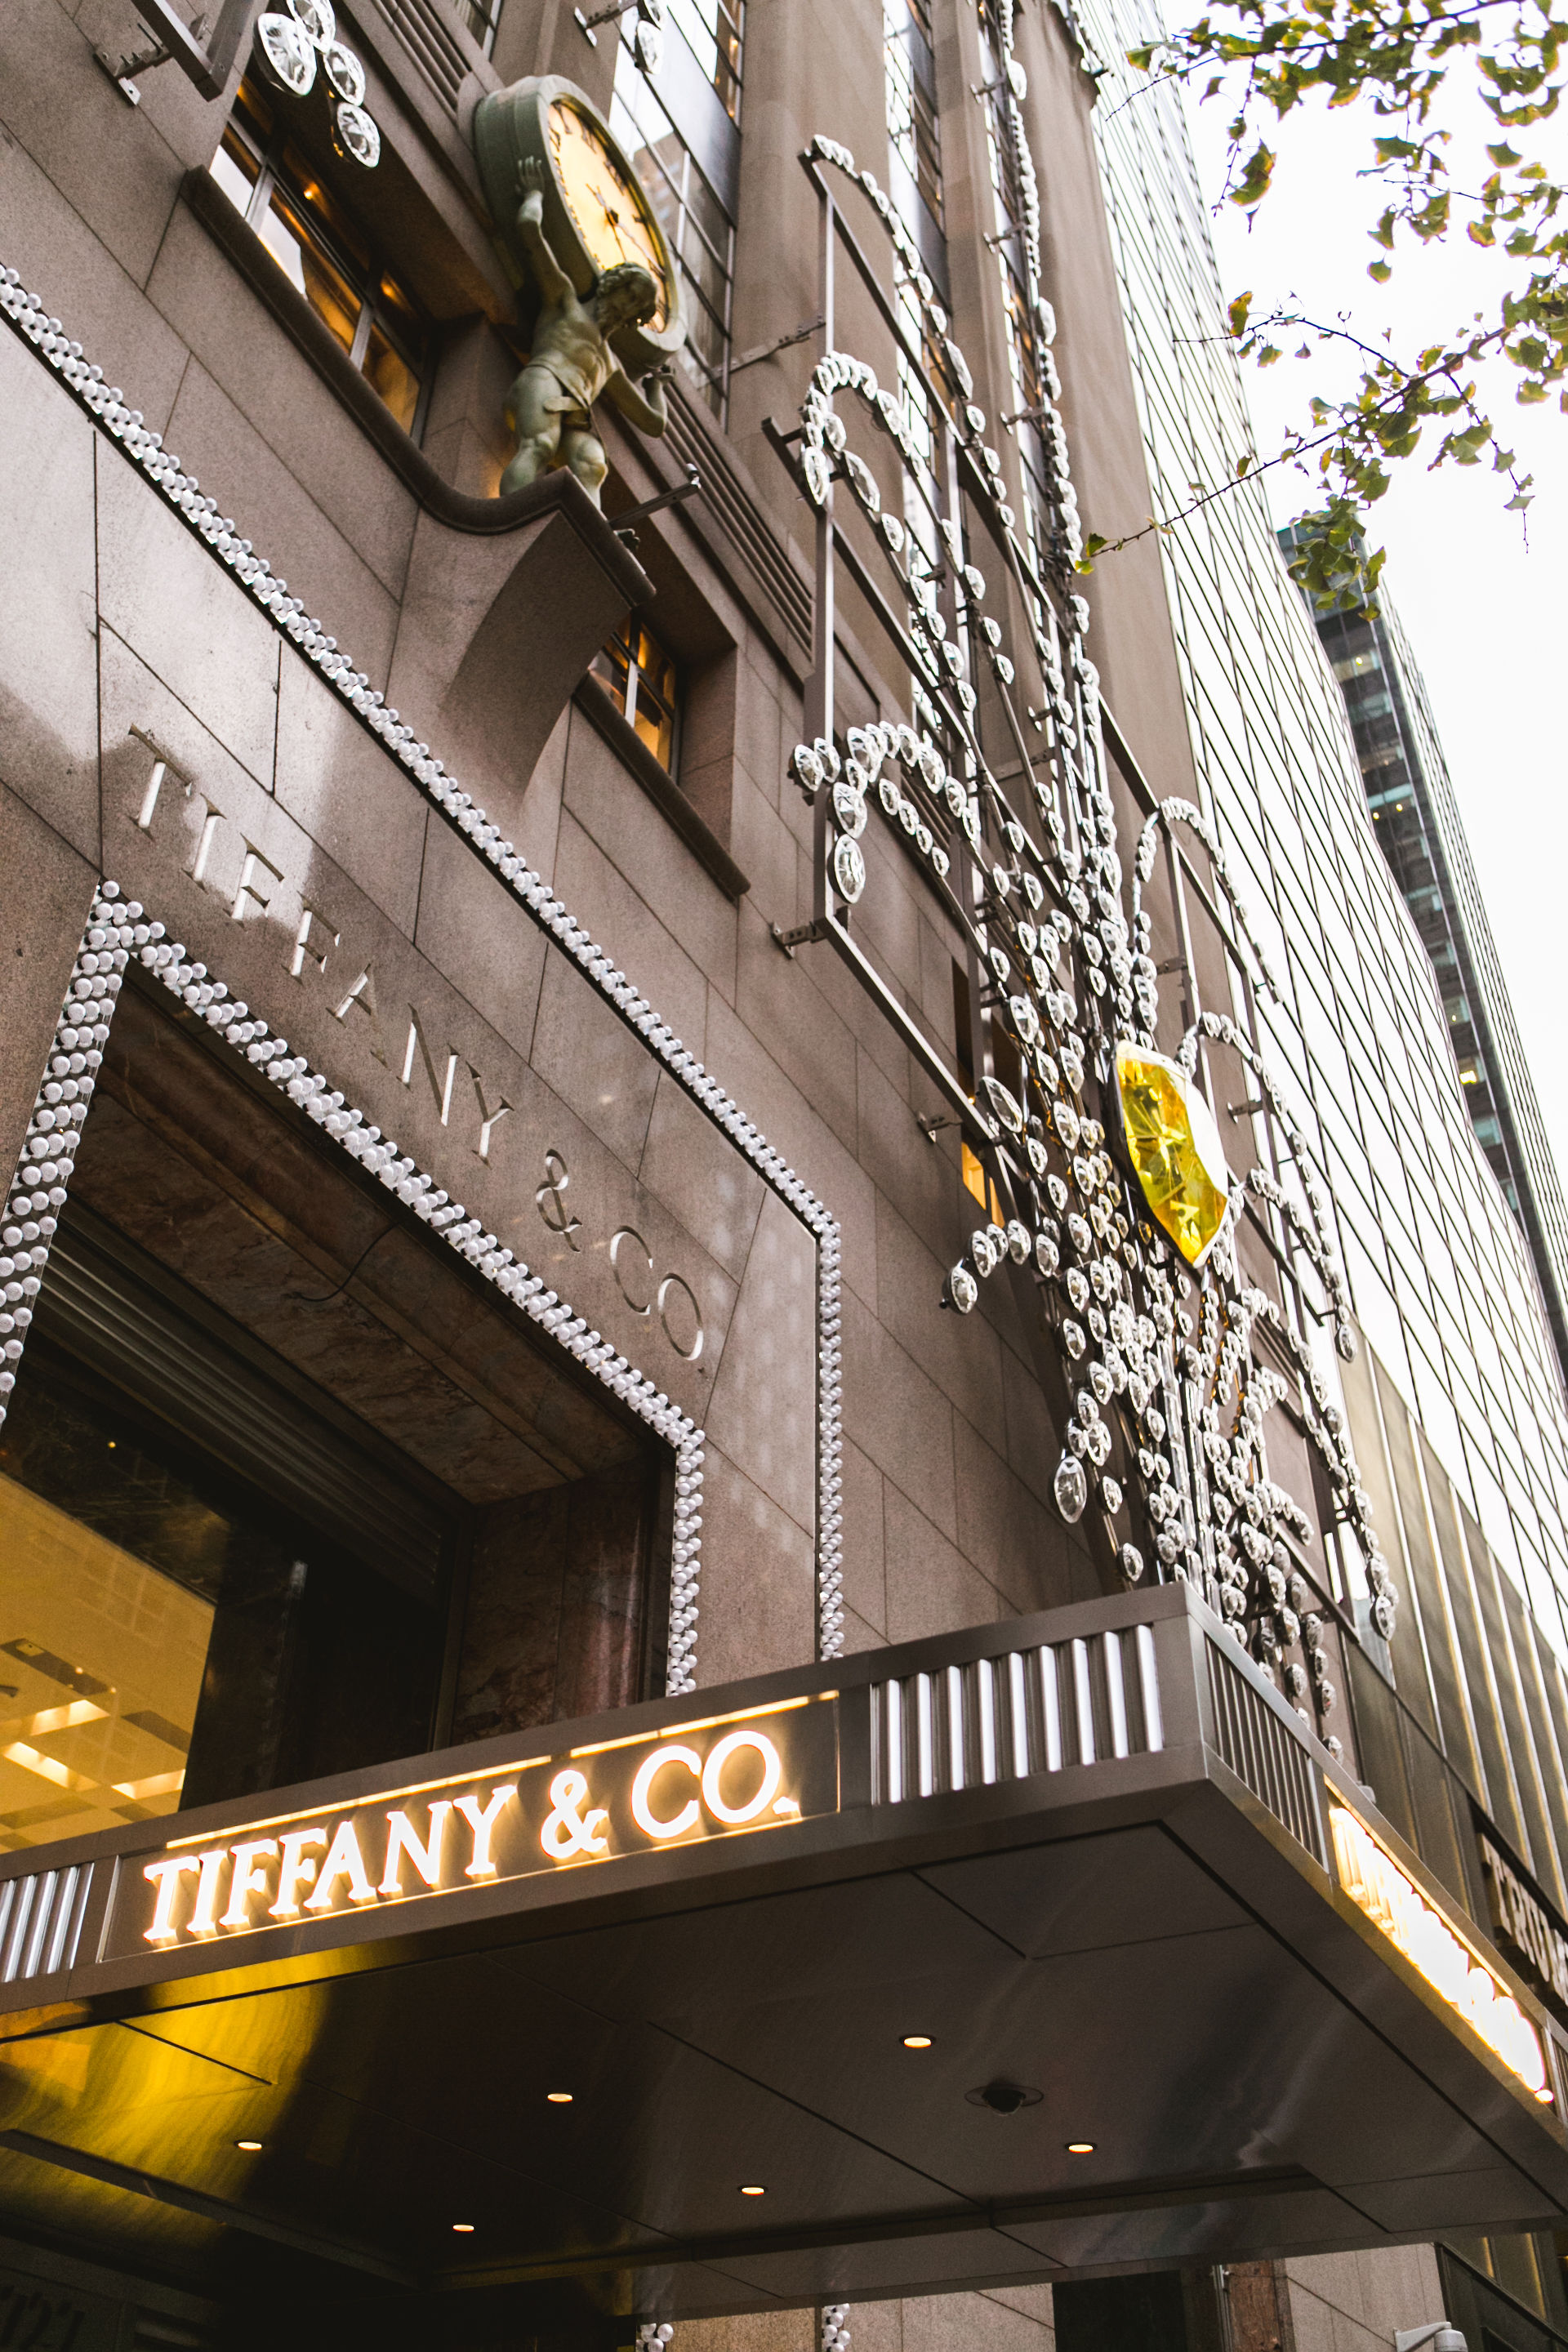 Blue Box Cafe NYC - Tiffany & Co